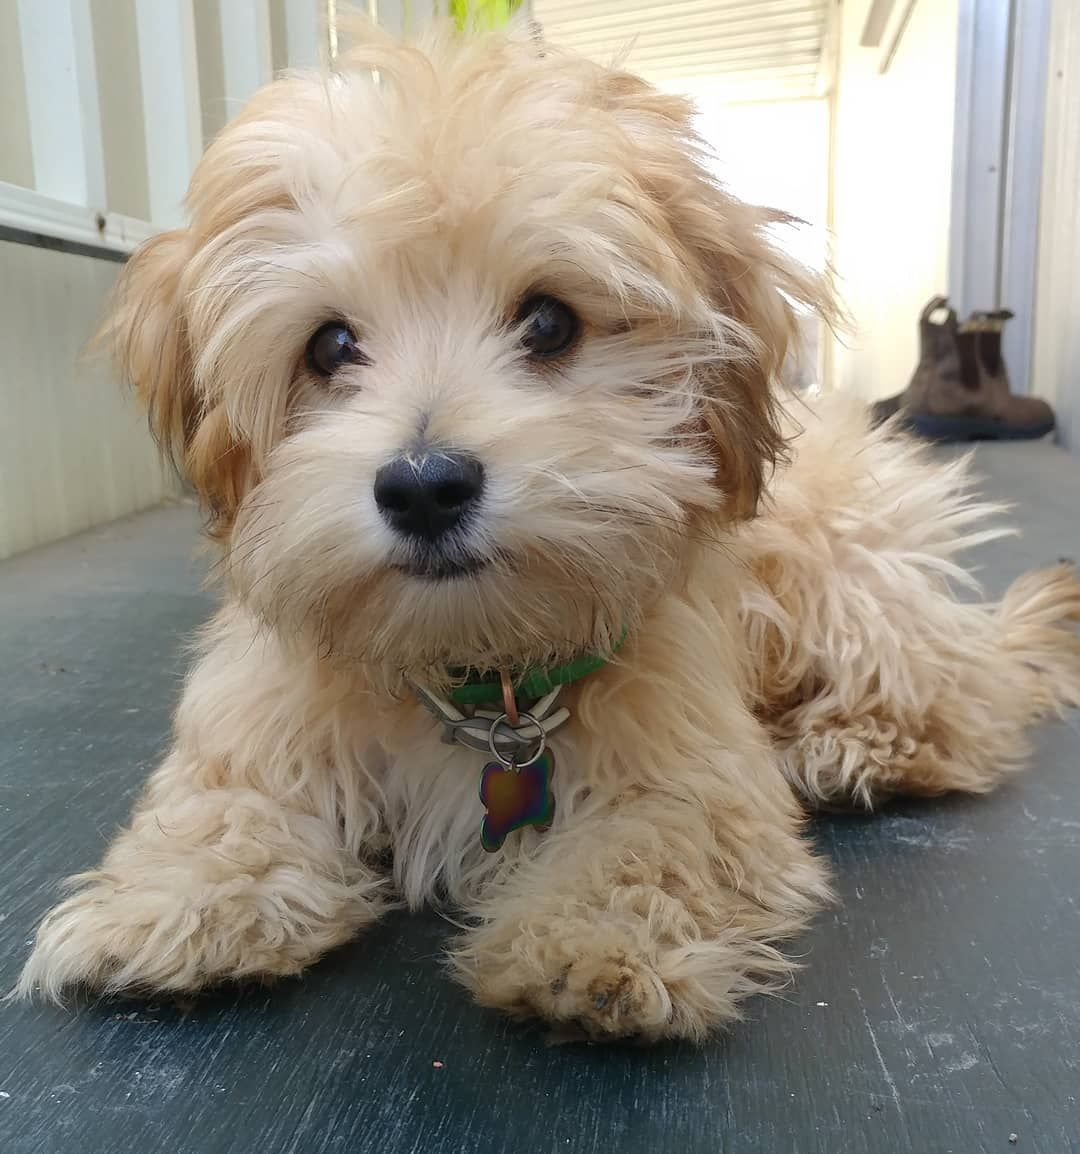 All About The Morkie (The Maltese Yorkshire Terrier Mix